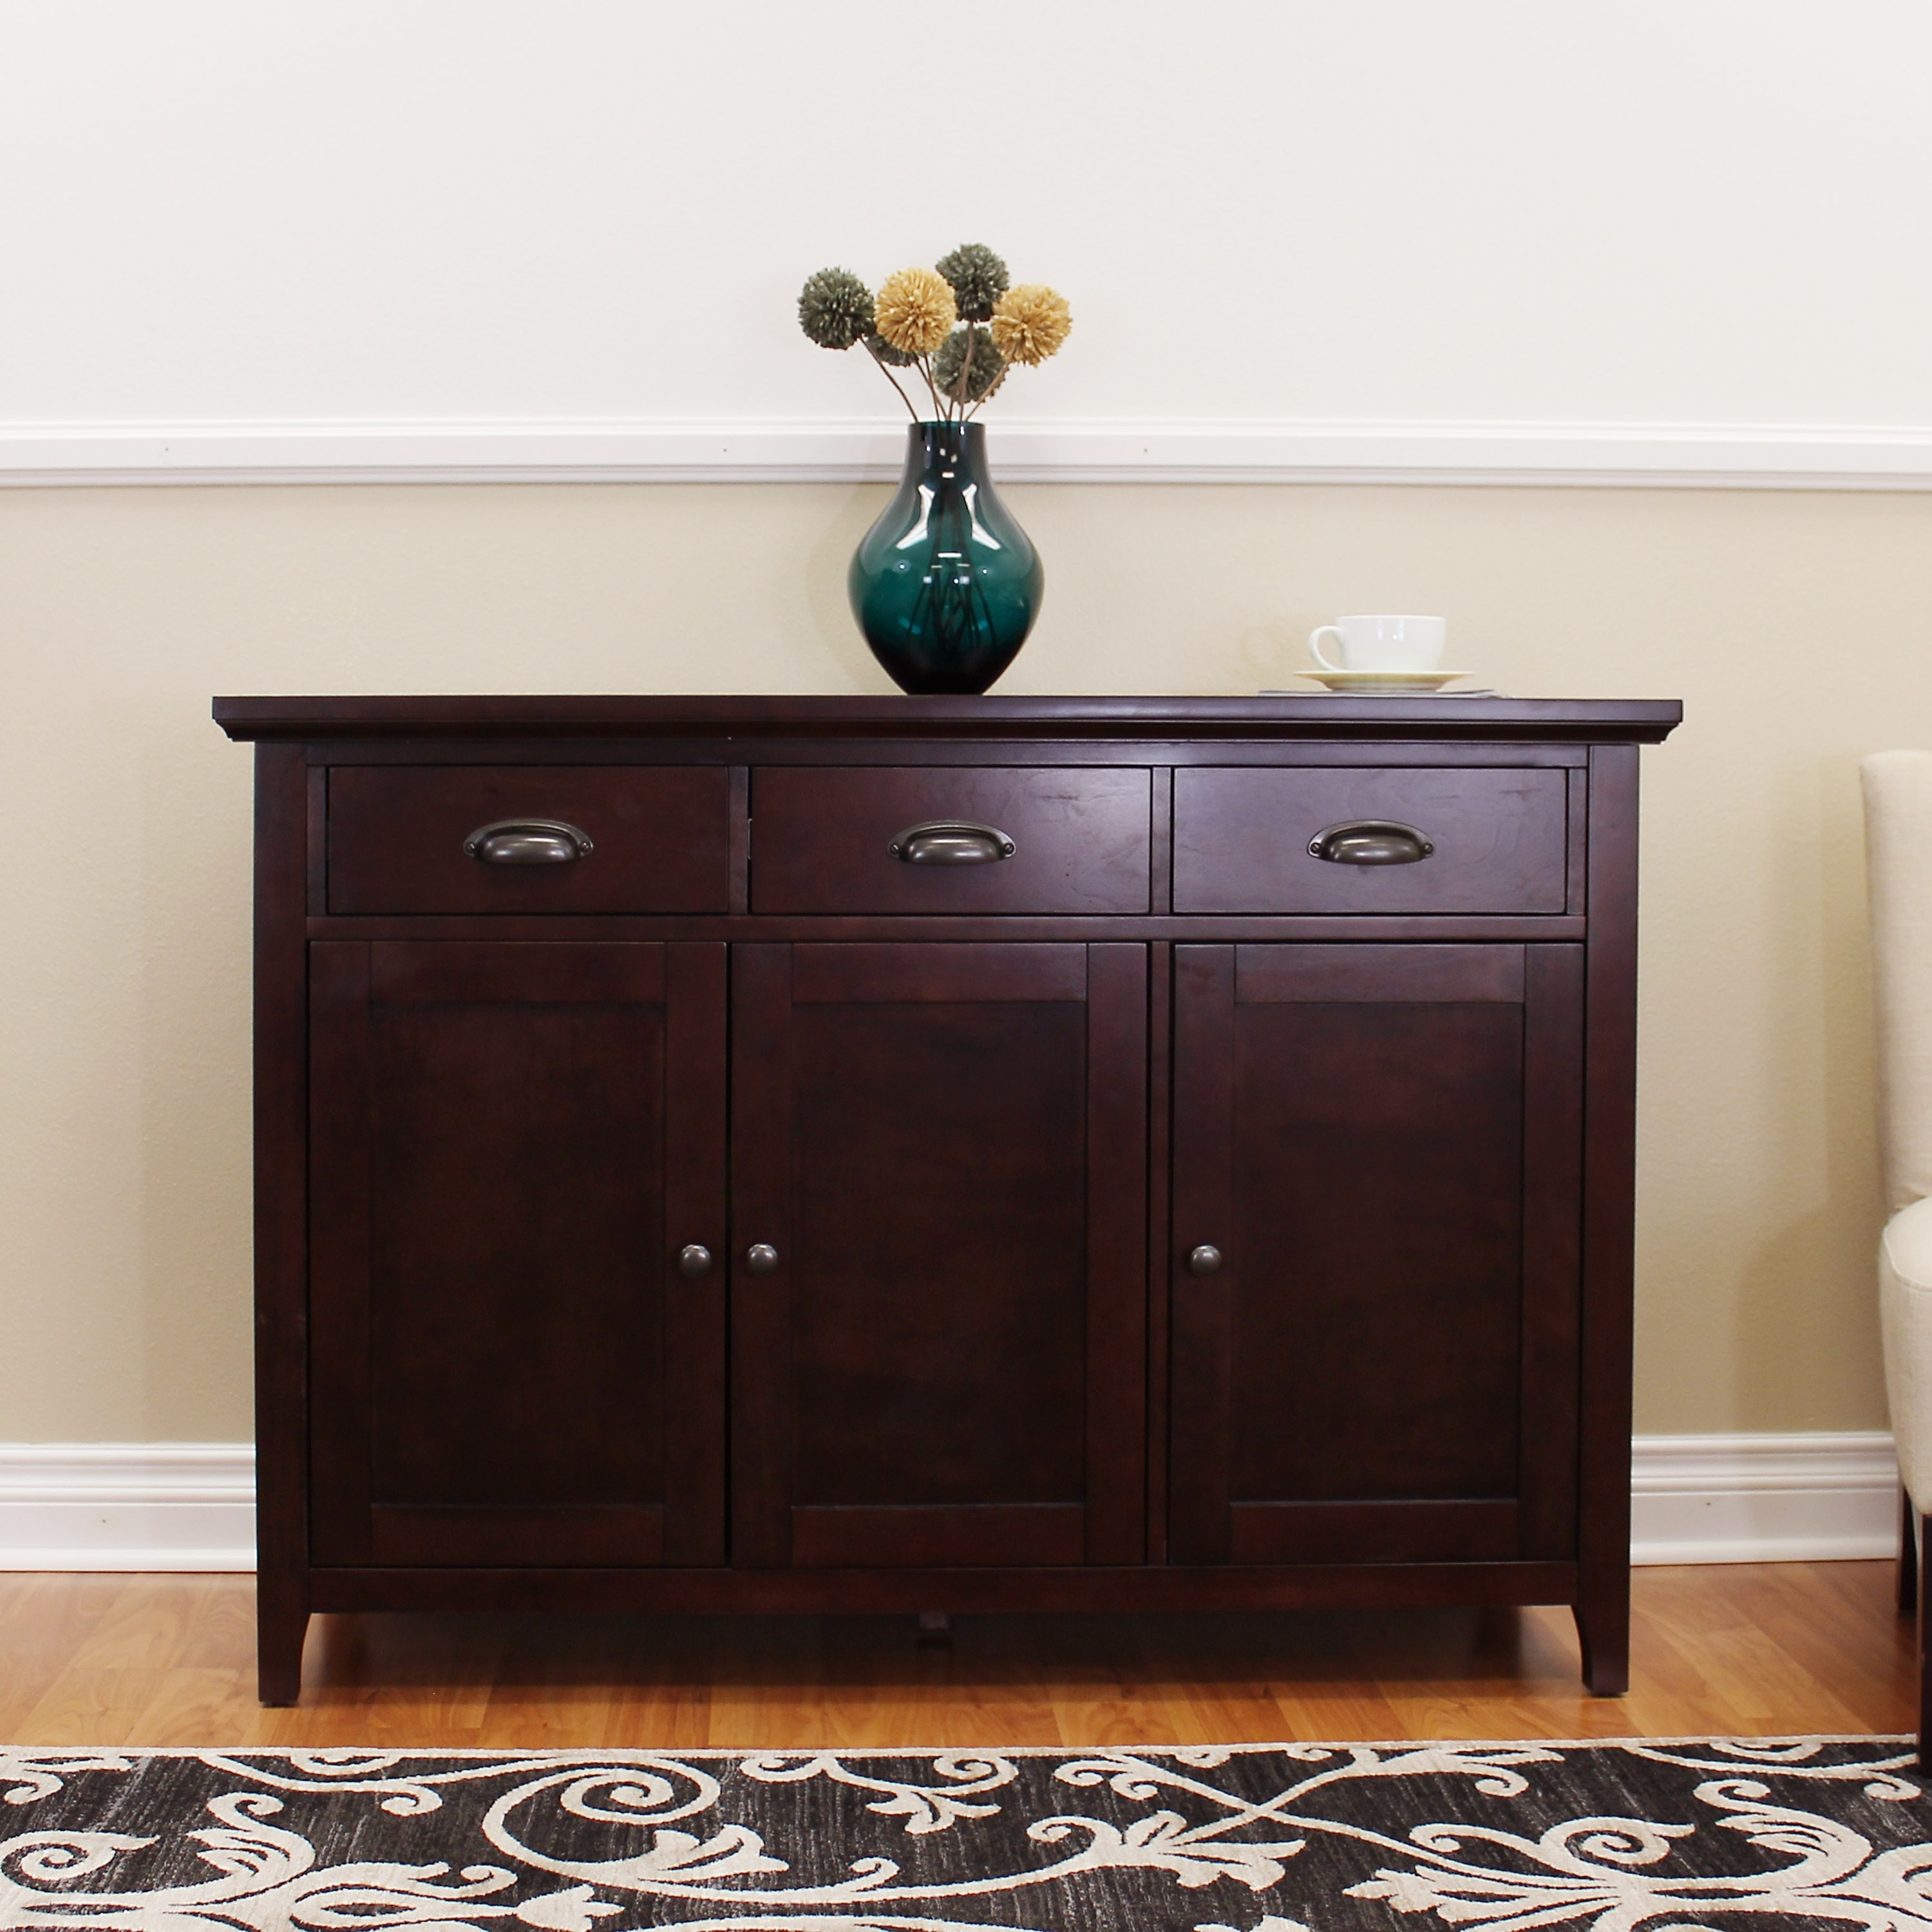 donnieann lindendale espresso inch sideboard  buffet table  freeshipping today  overstockcom  . donnieann lindendale espresso inch sideboard  buffet table